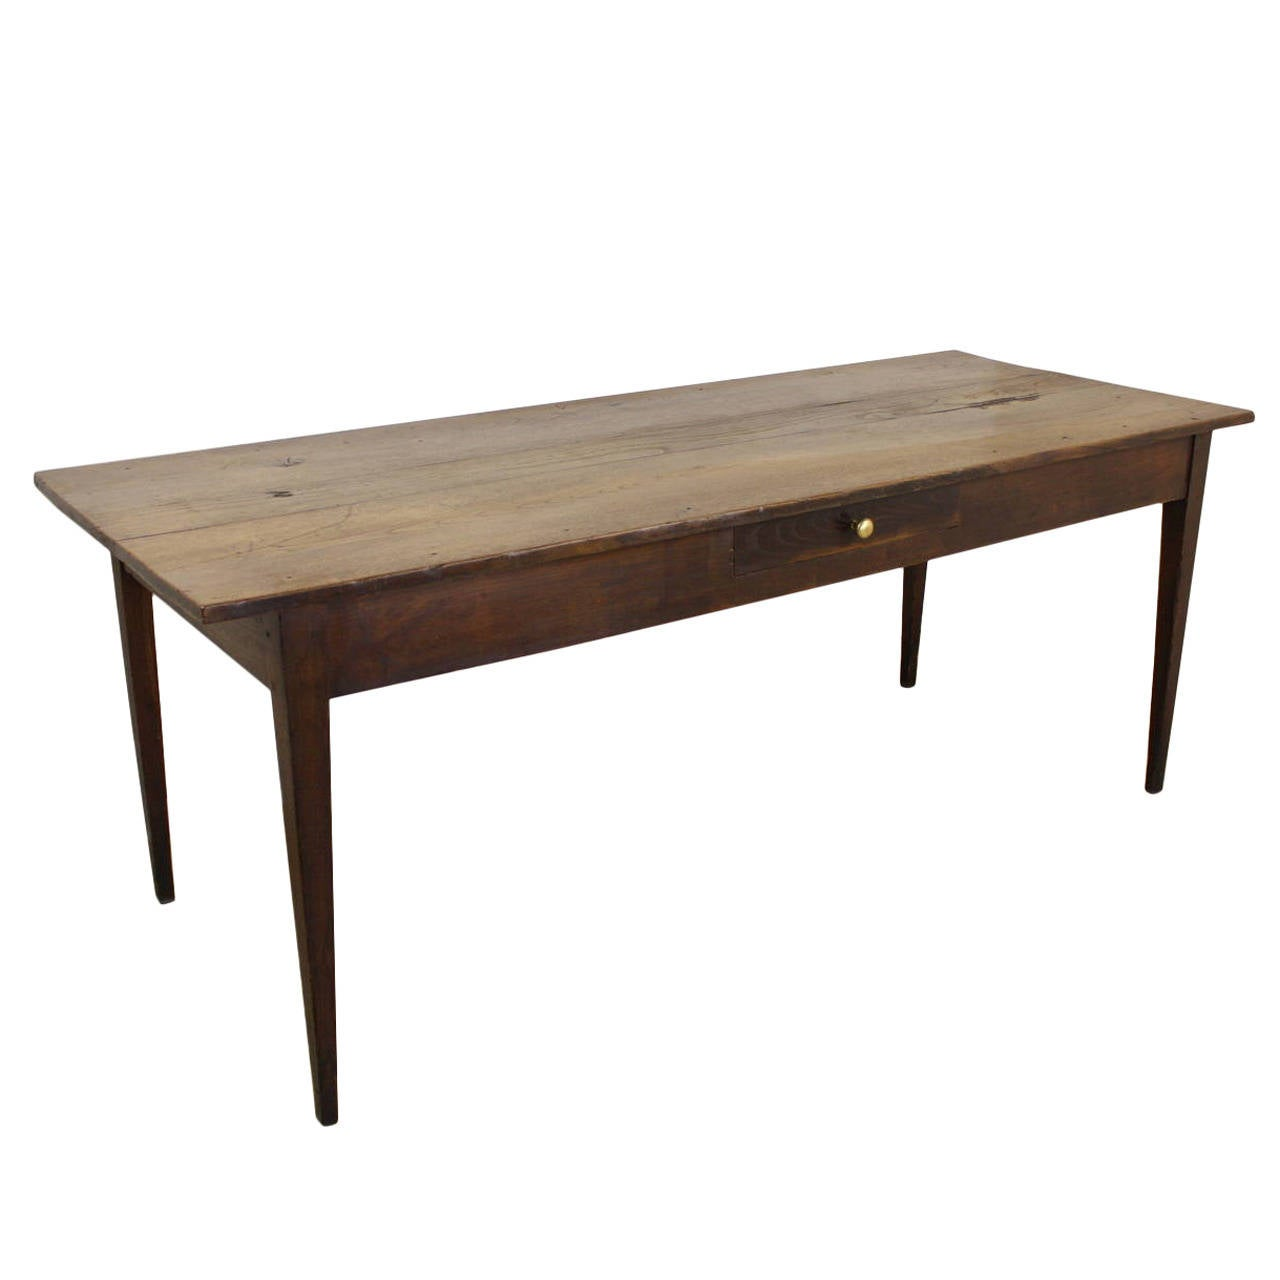 Antique French Chestnut Country Farm Table